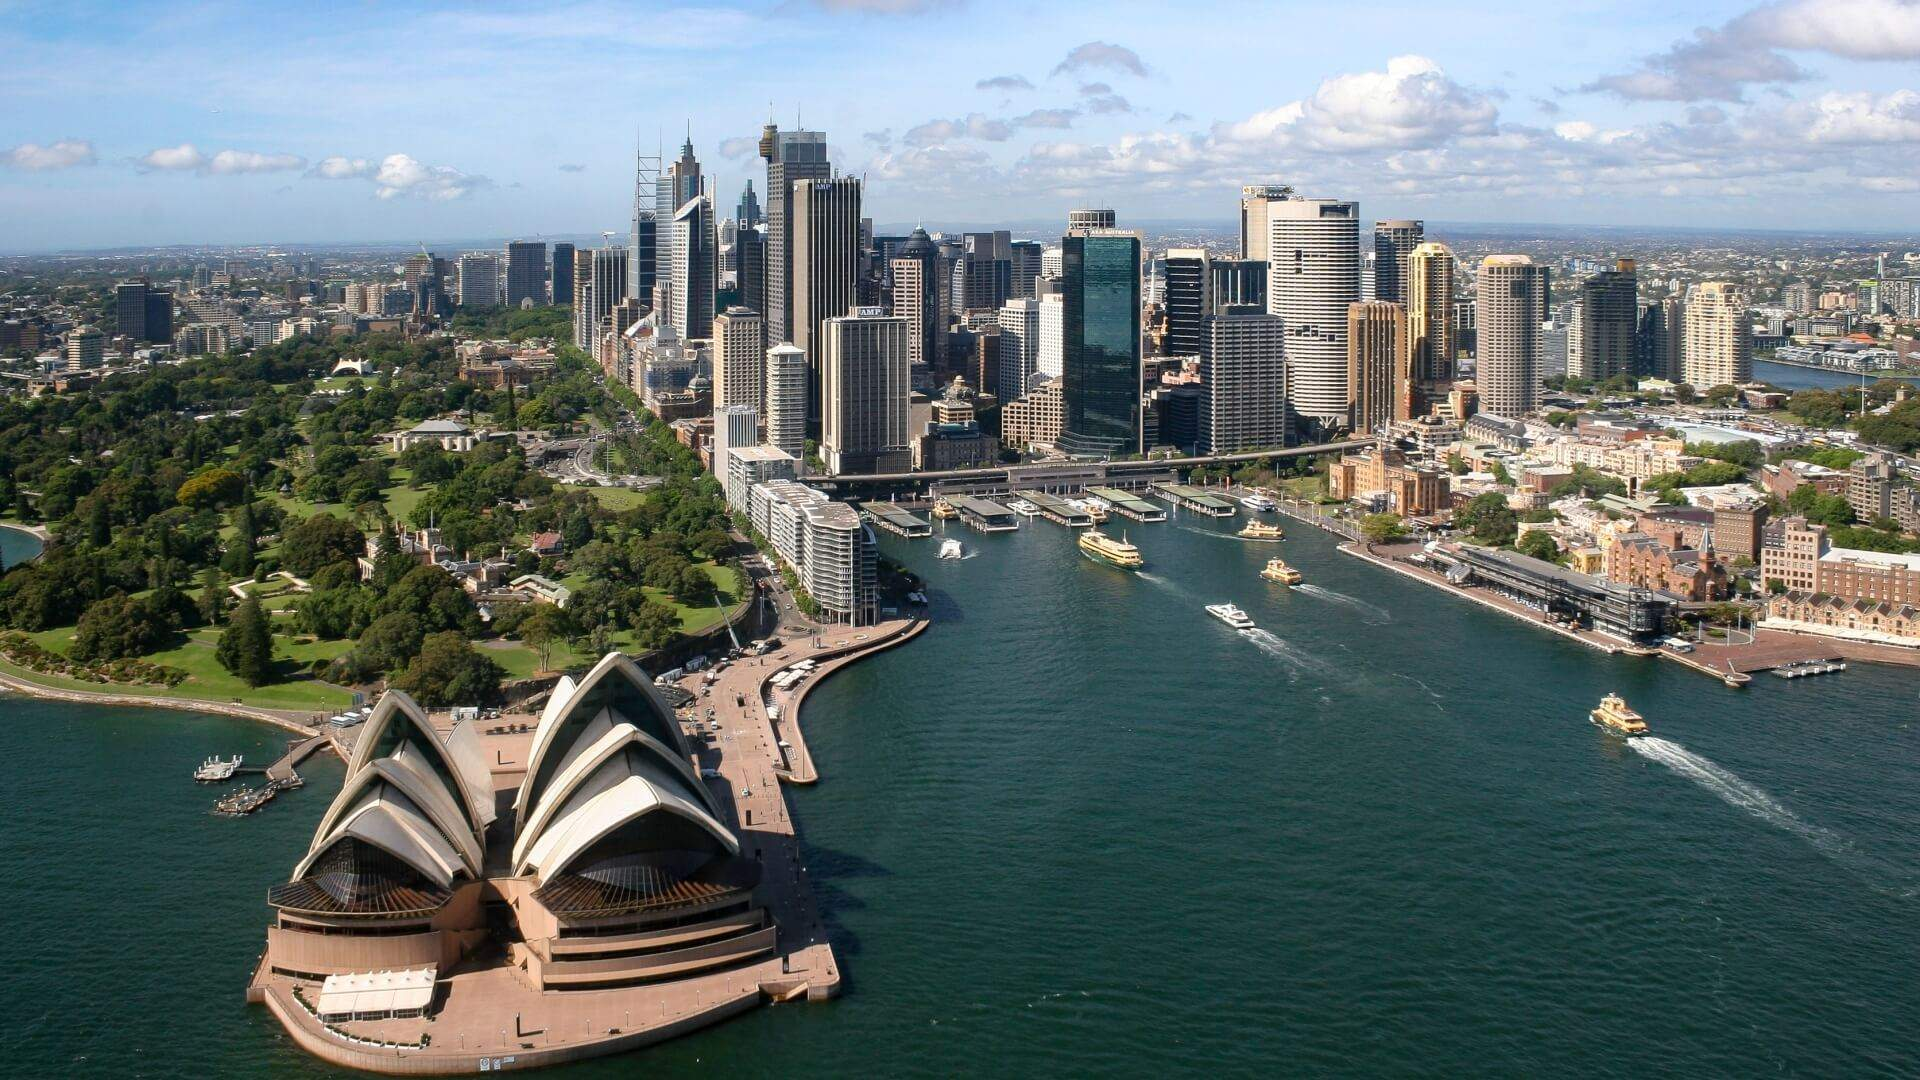 Sydney Has Once Again Been Named One of the Top Ten Best Cities in the World